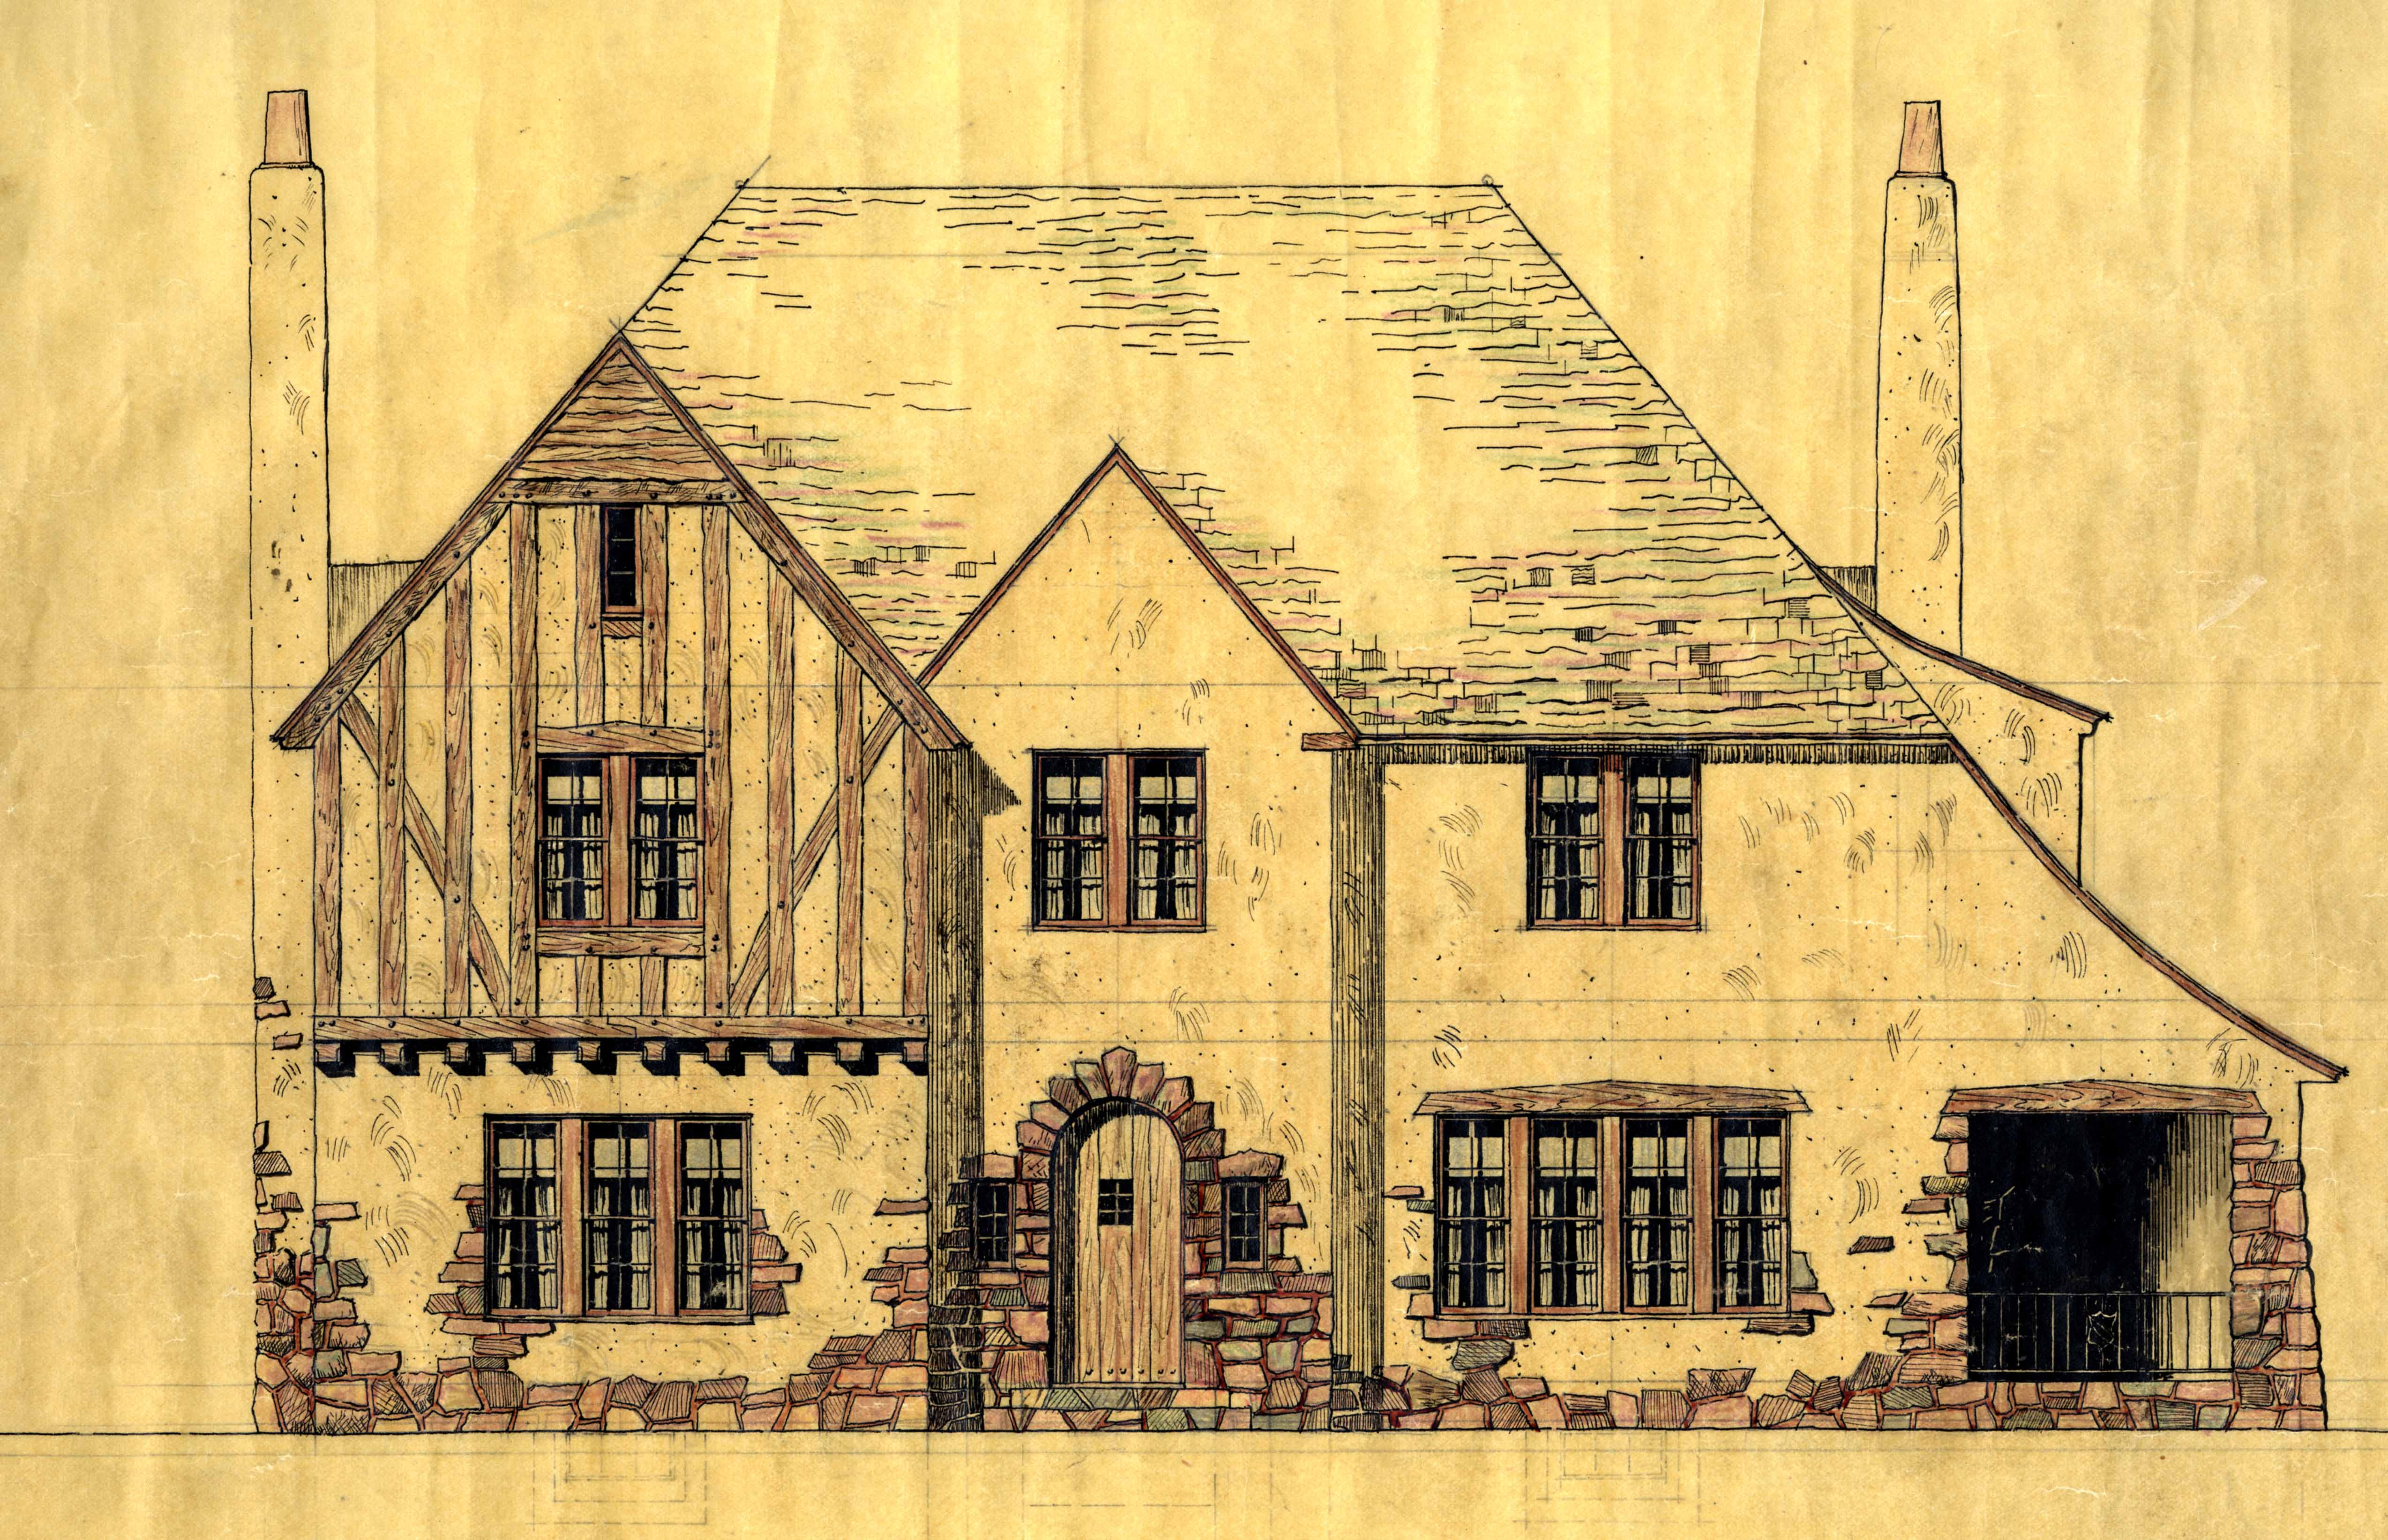 Architect rendering of Lewis House, 1920s